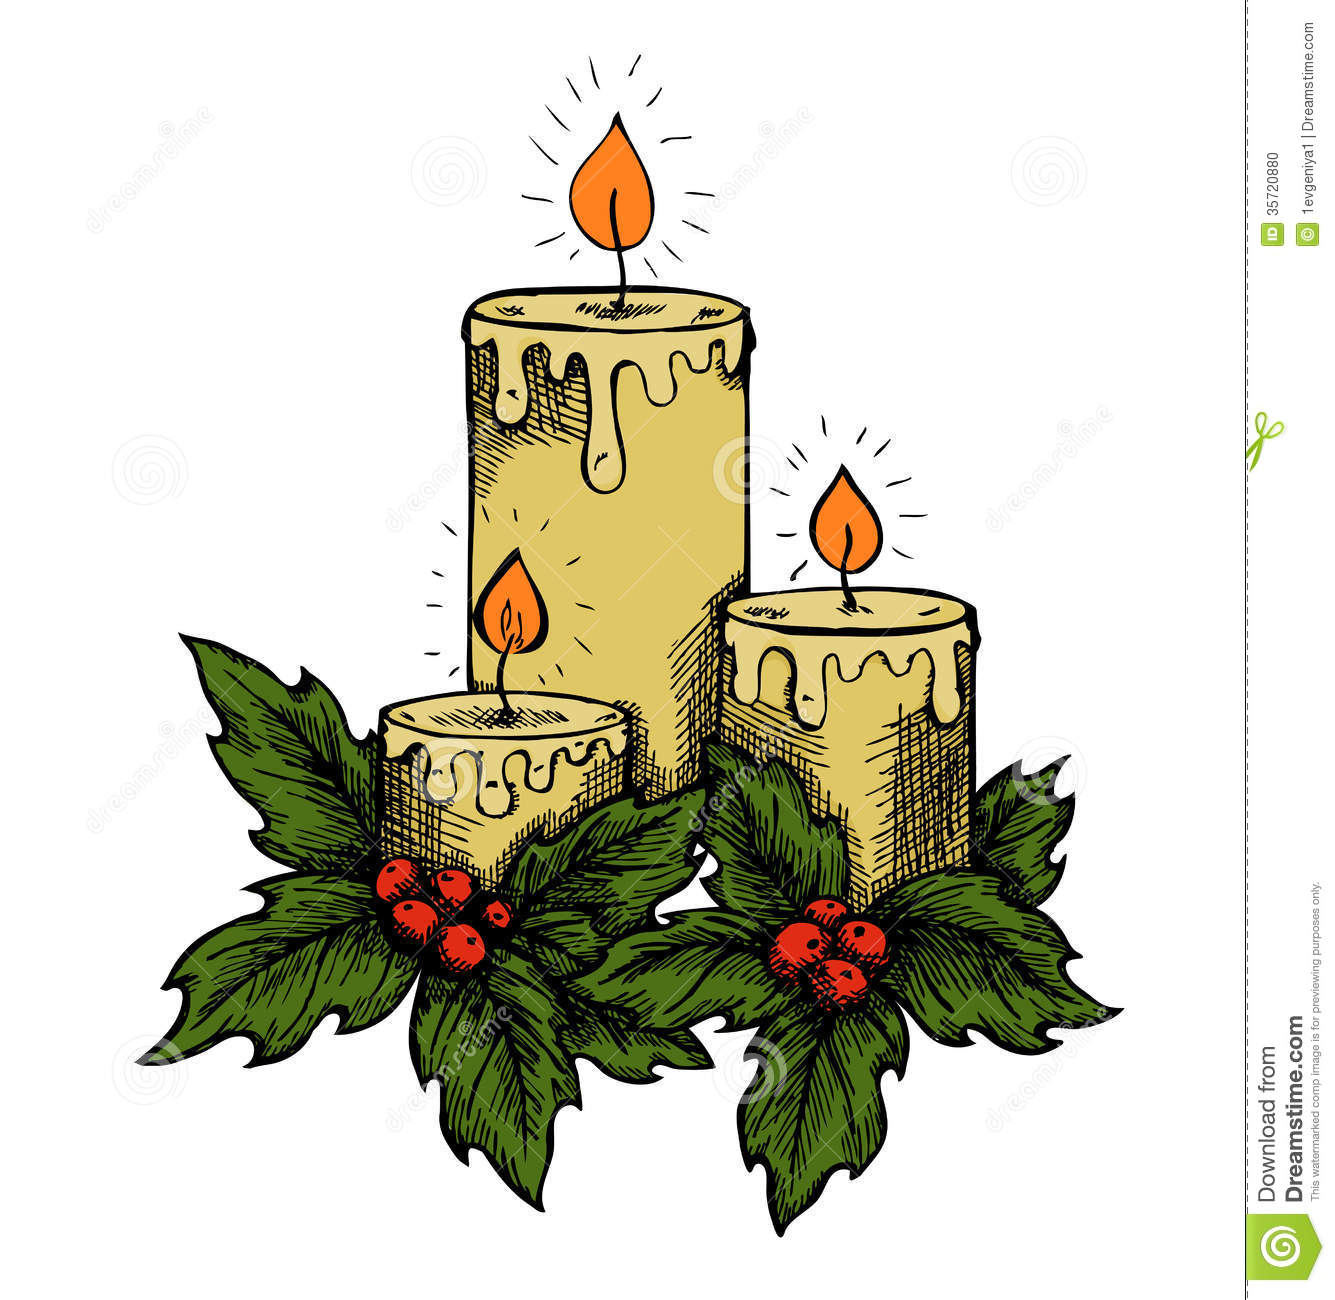 Graphic drawing candles and holly berries leaves.